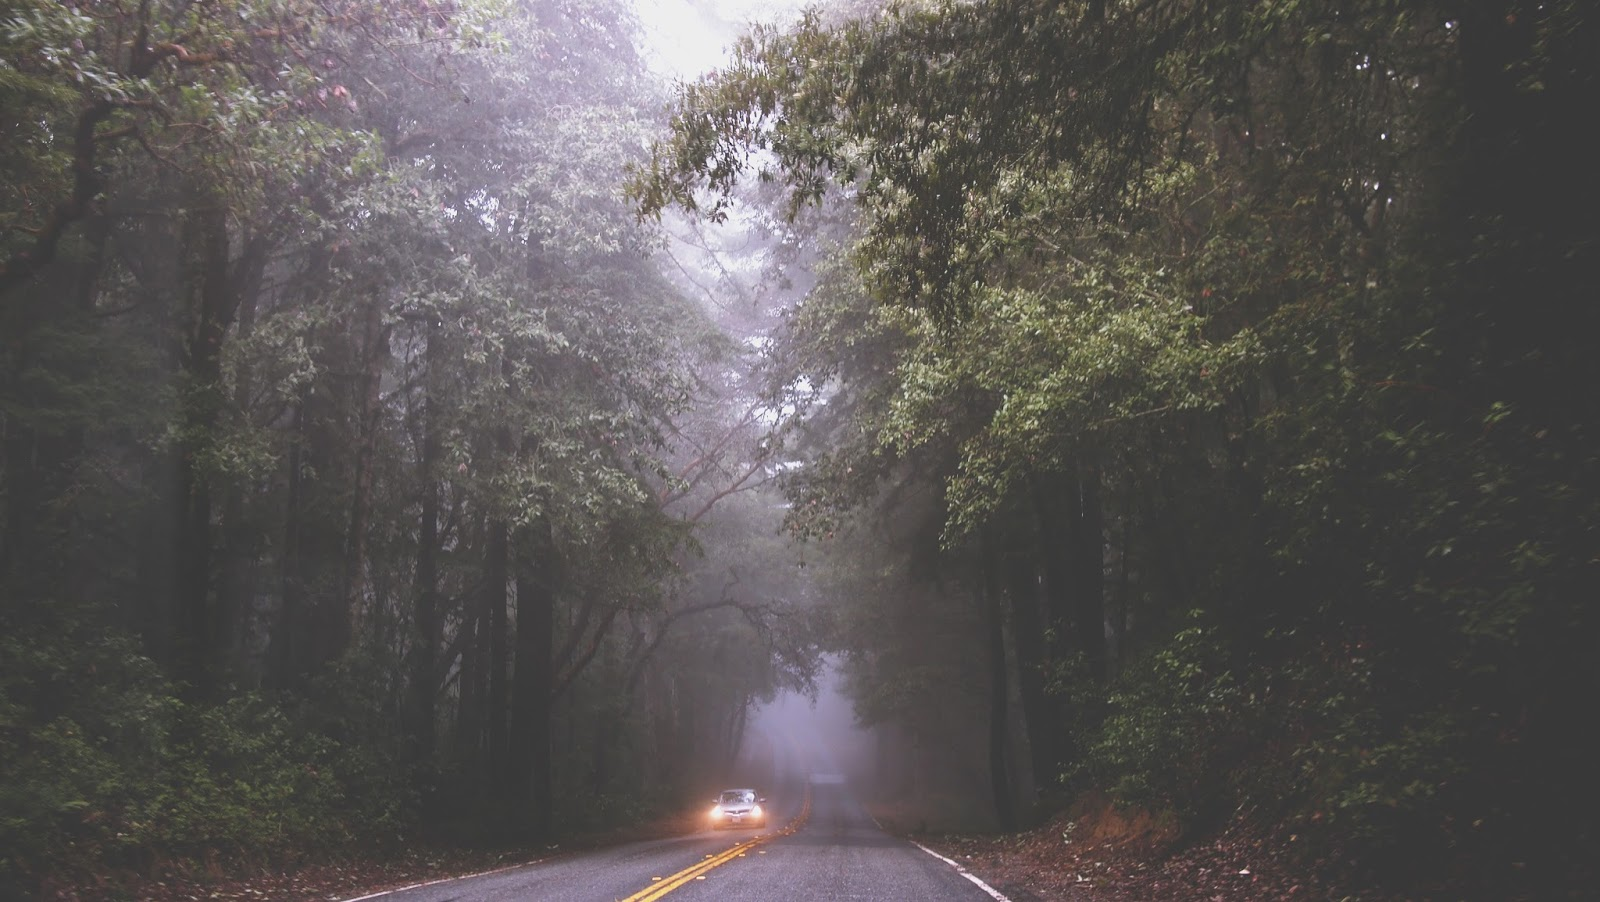 Car driving on a deserted road through a forest